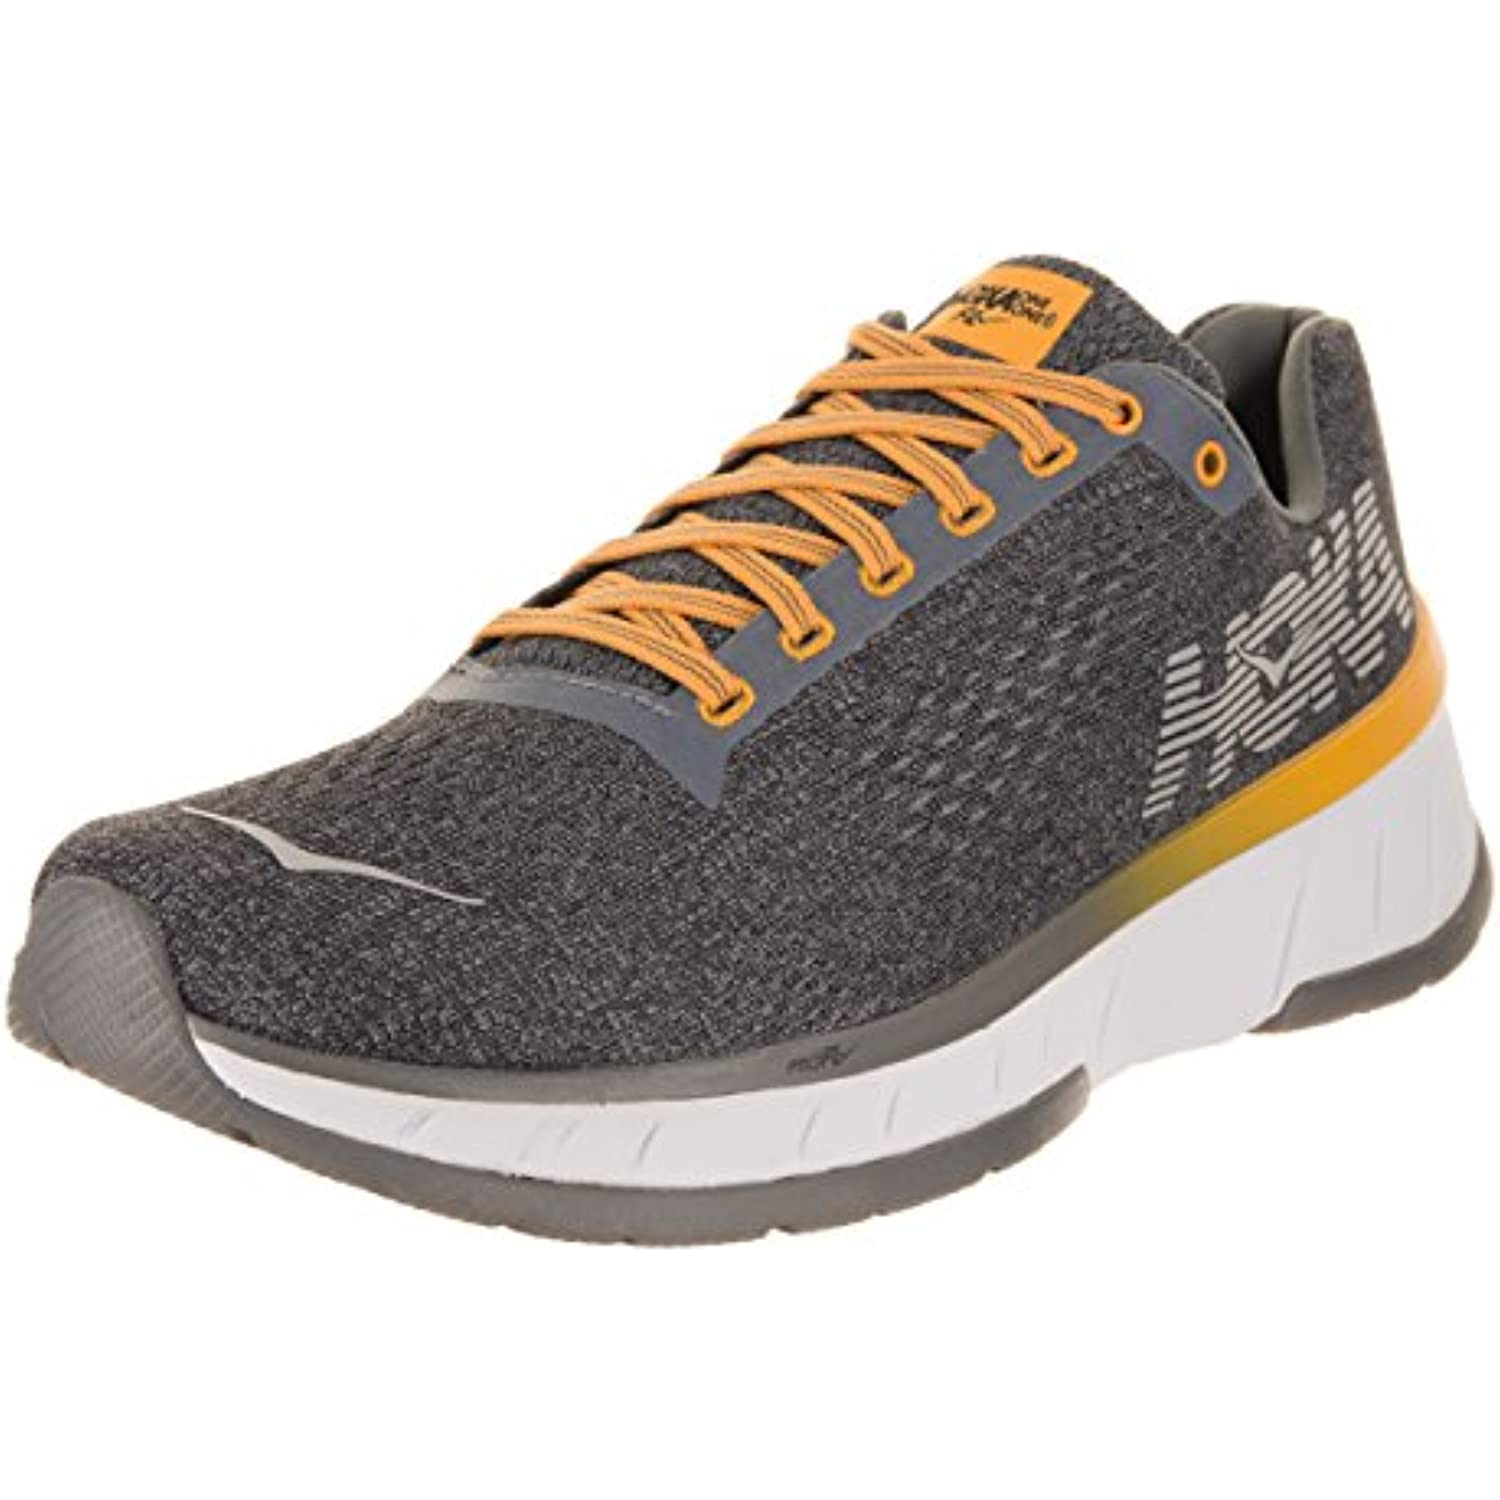 HOKA one - one Cavu Charcoal Black - B0788VHXWD - one ee65ed